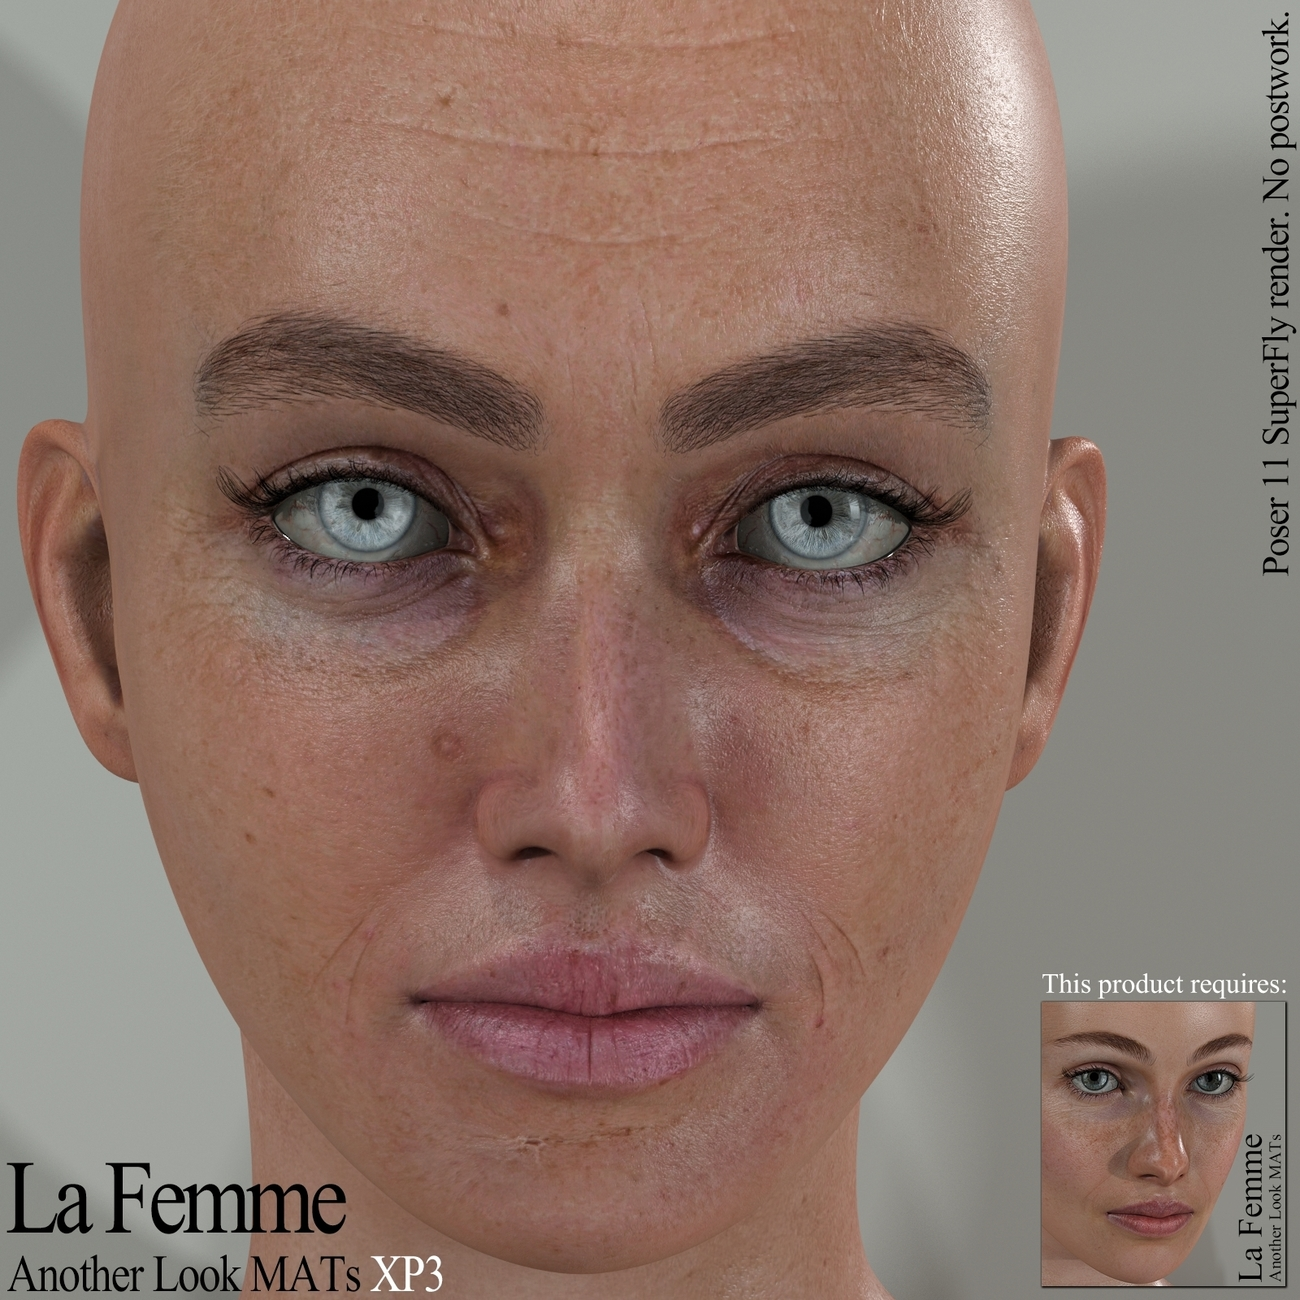 La Femme - Another Look MATs XP3 by 3Dream